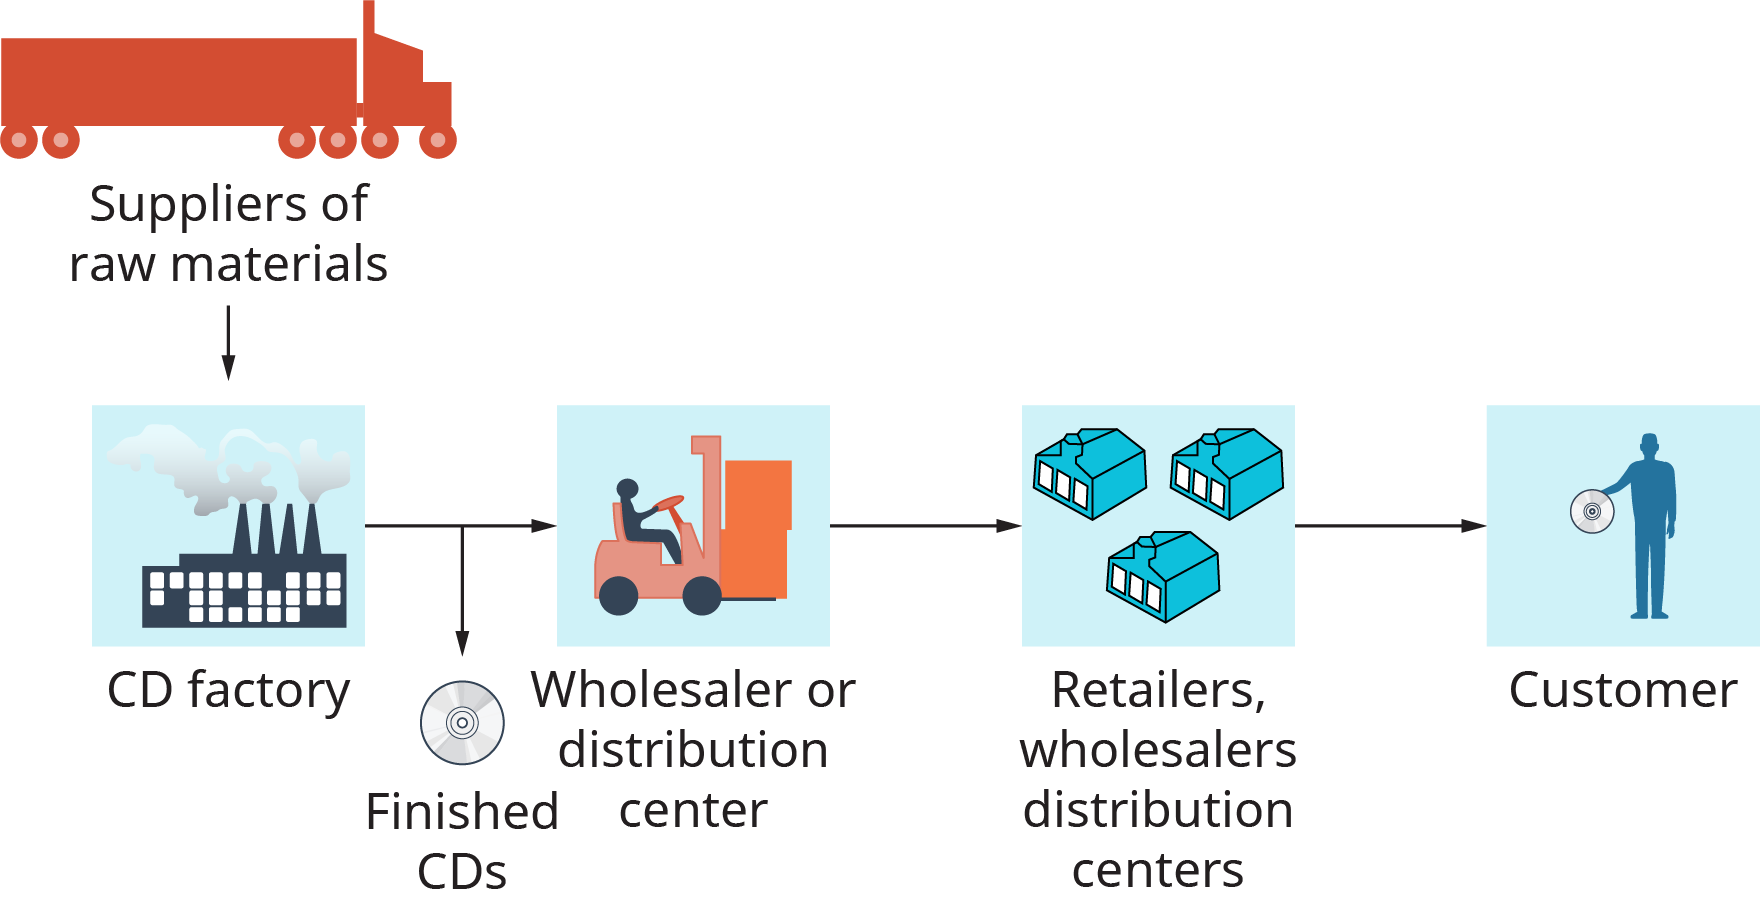 The illustration shows a large truck as a supplier of raw materials. These are passed to a C D factory. Finished C Ds are sent to a wholesaler or distribution center, and are then sent to retailers, wholesalers distribution centers, and then to the customer.